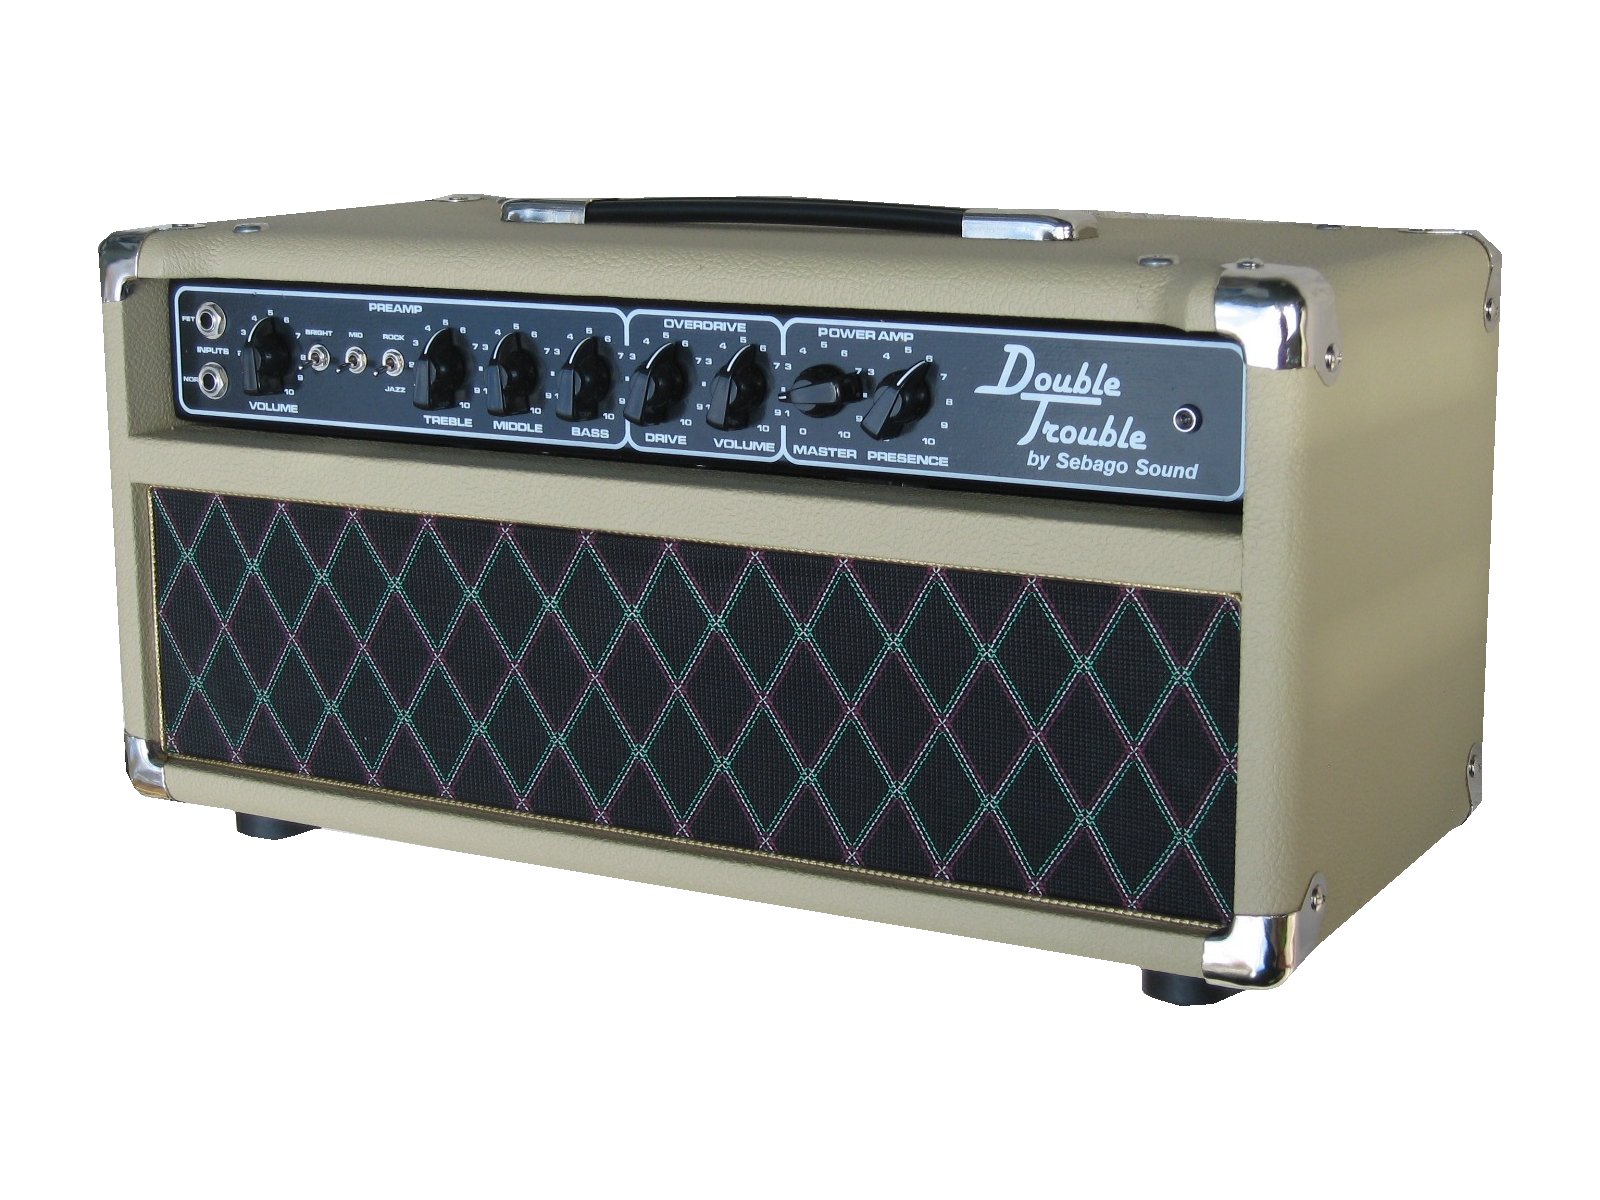 DT50 - Sebago Sound Amplifiers